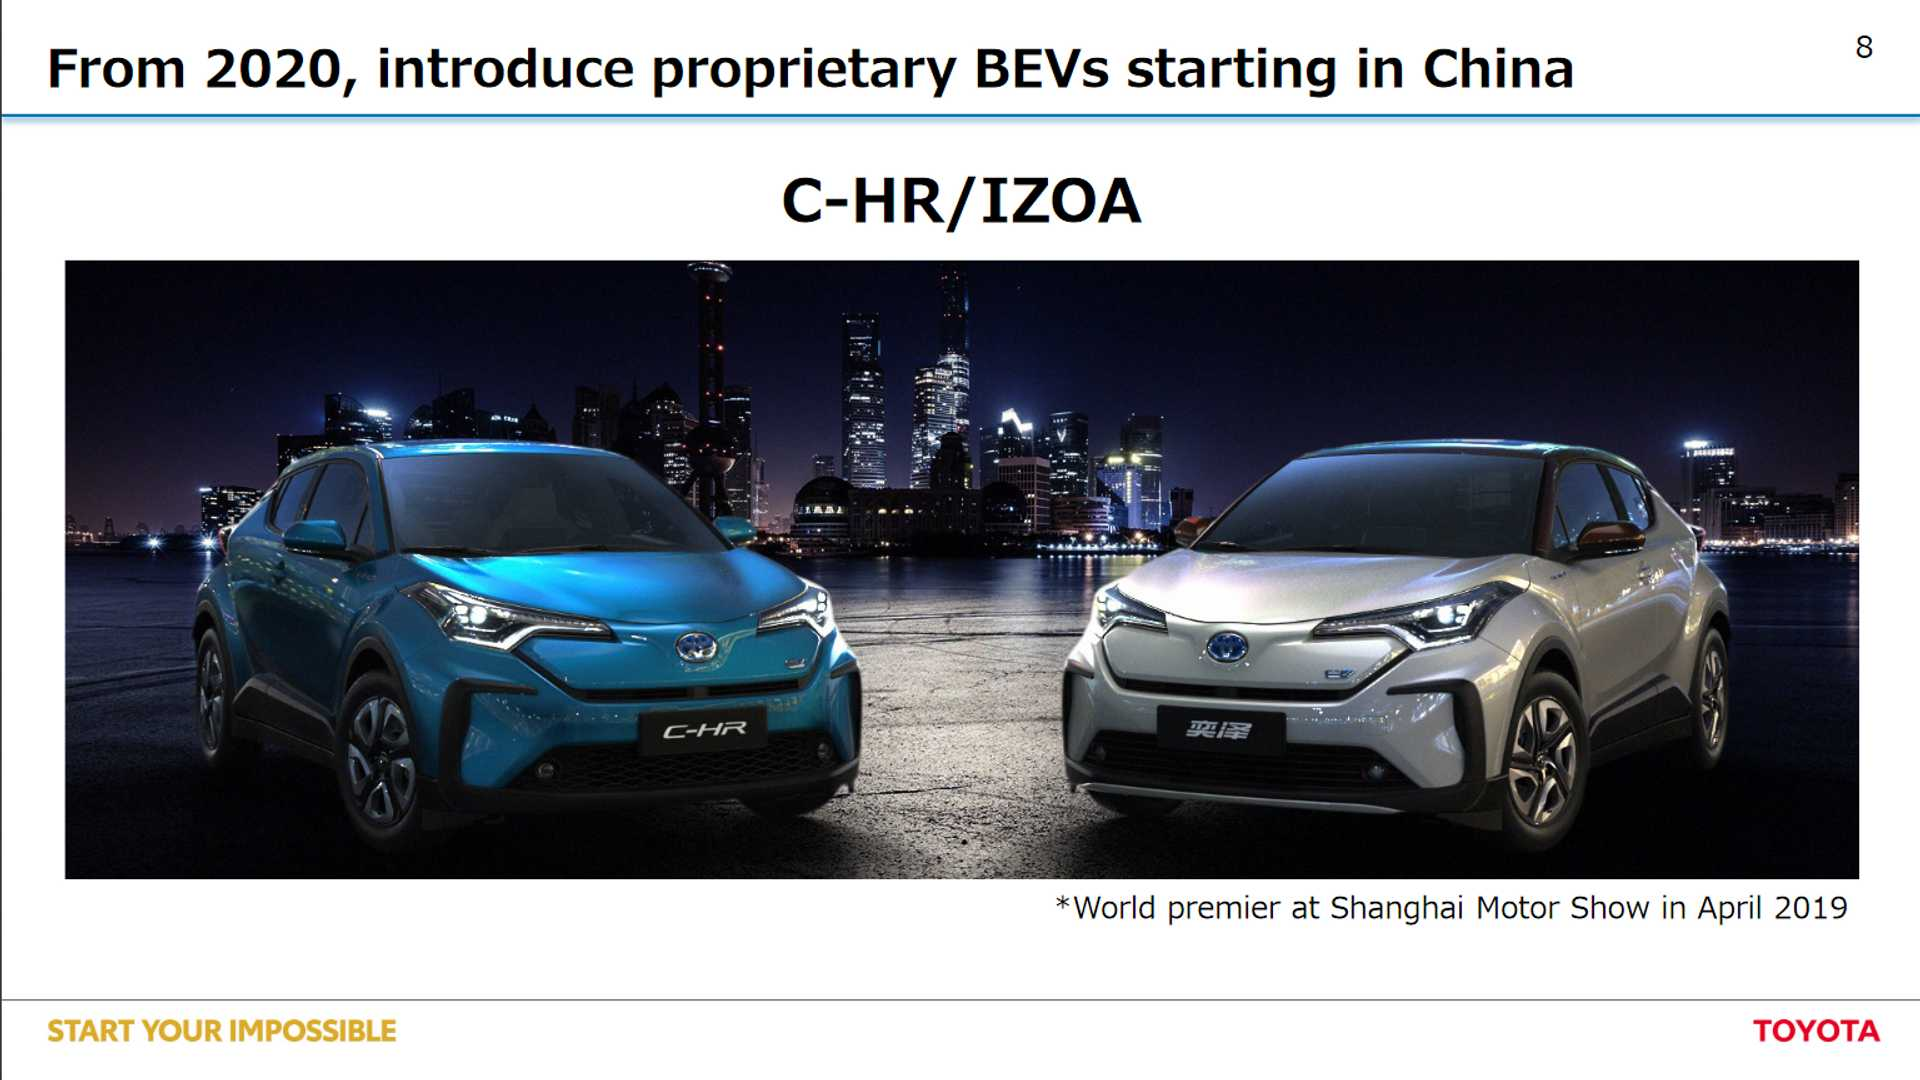 37 All New Toyota Bev 2020 Review for Toyota Bev 2020